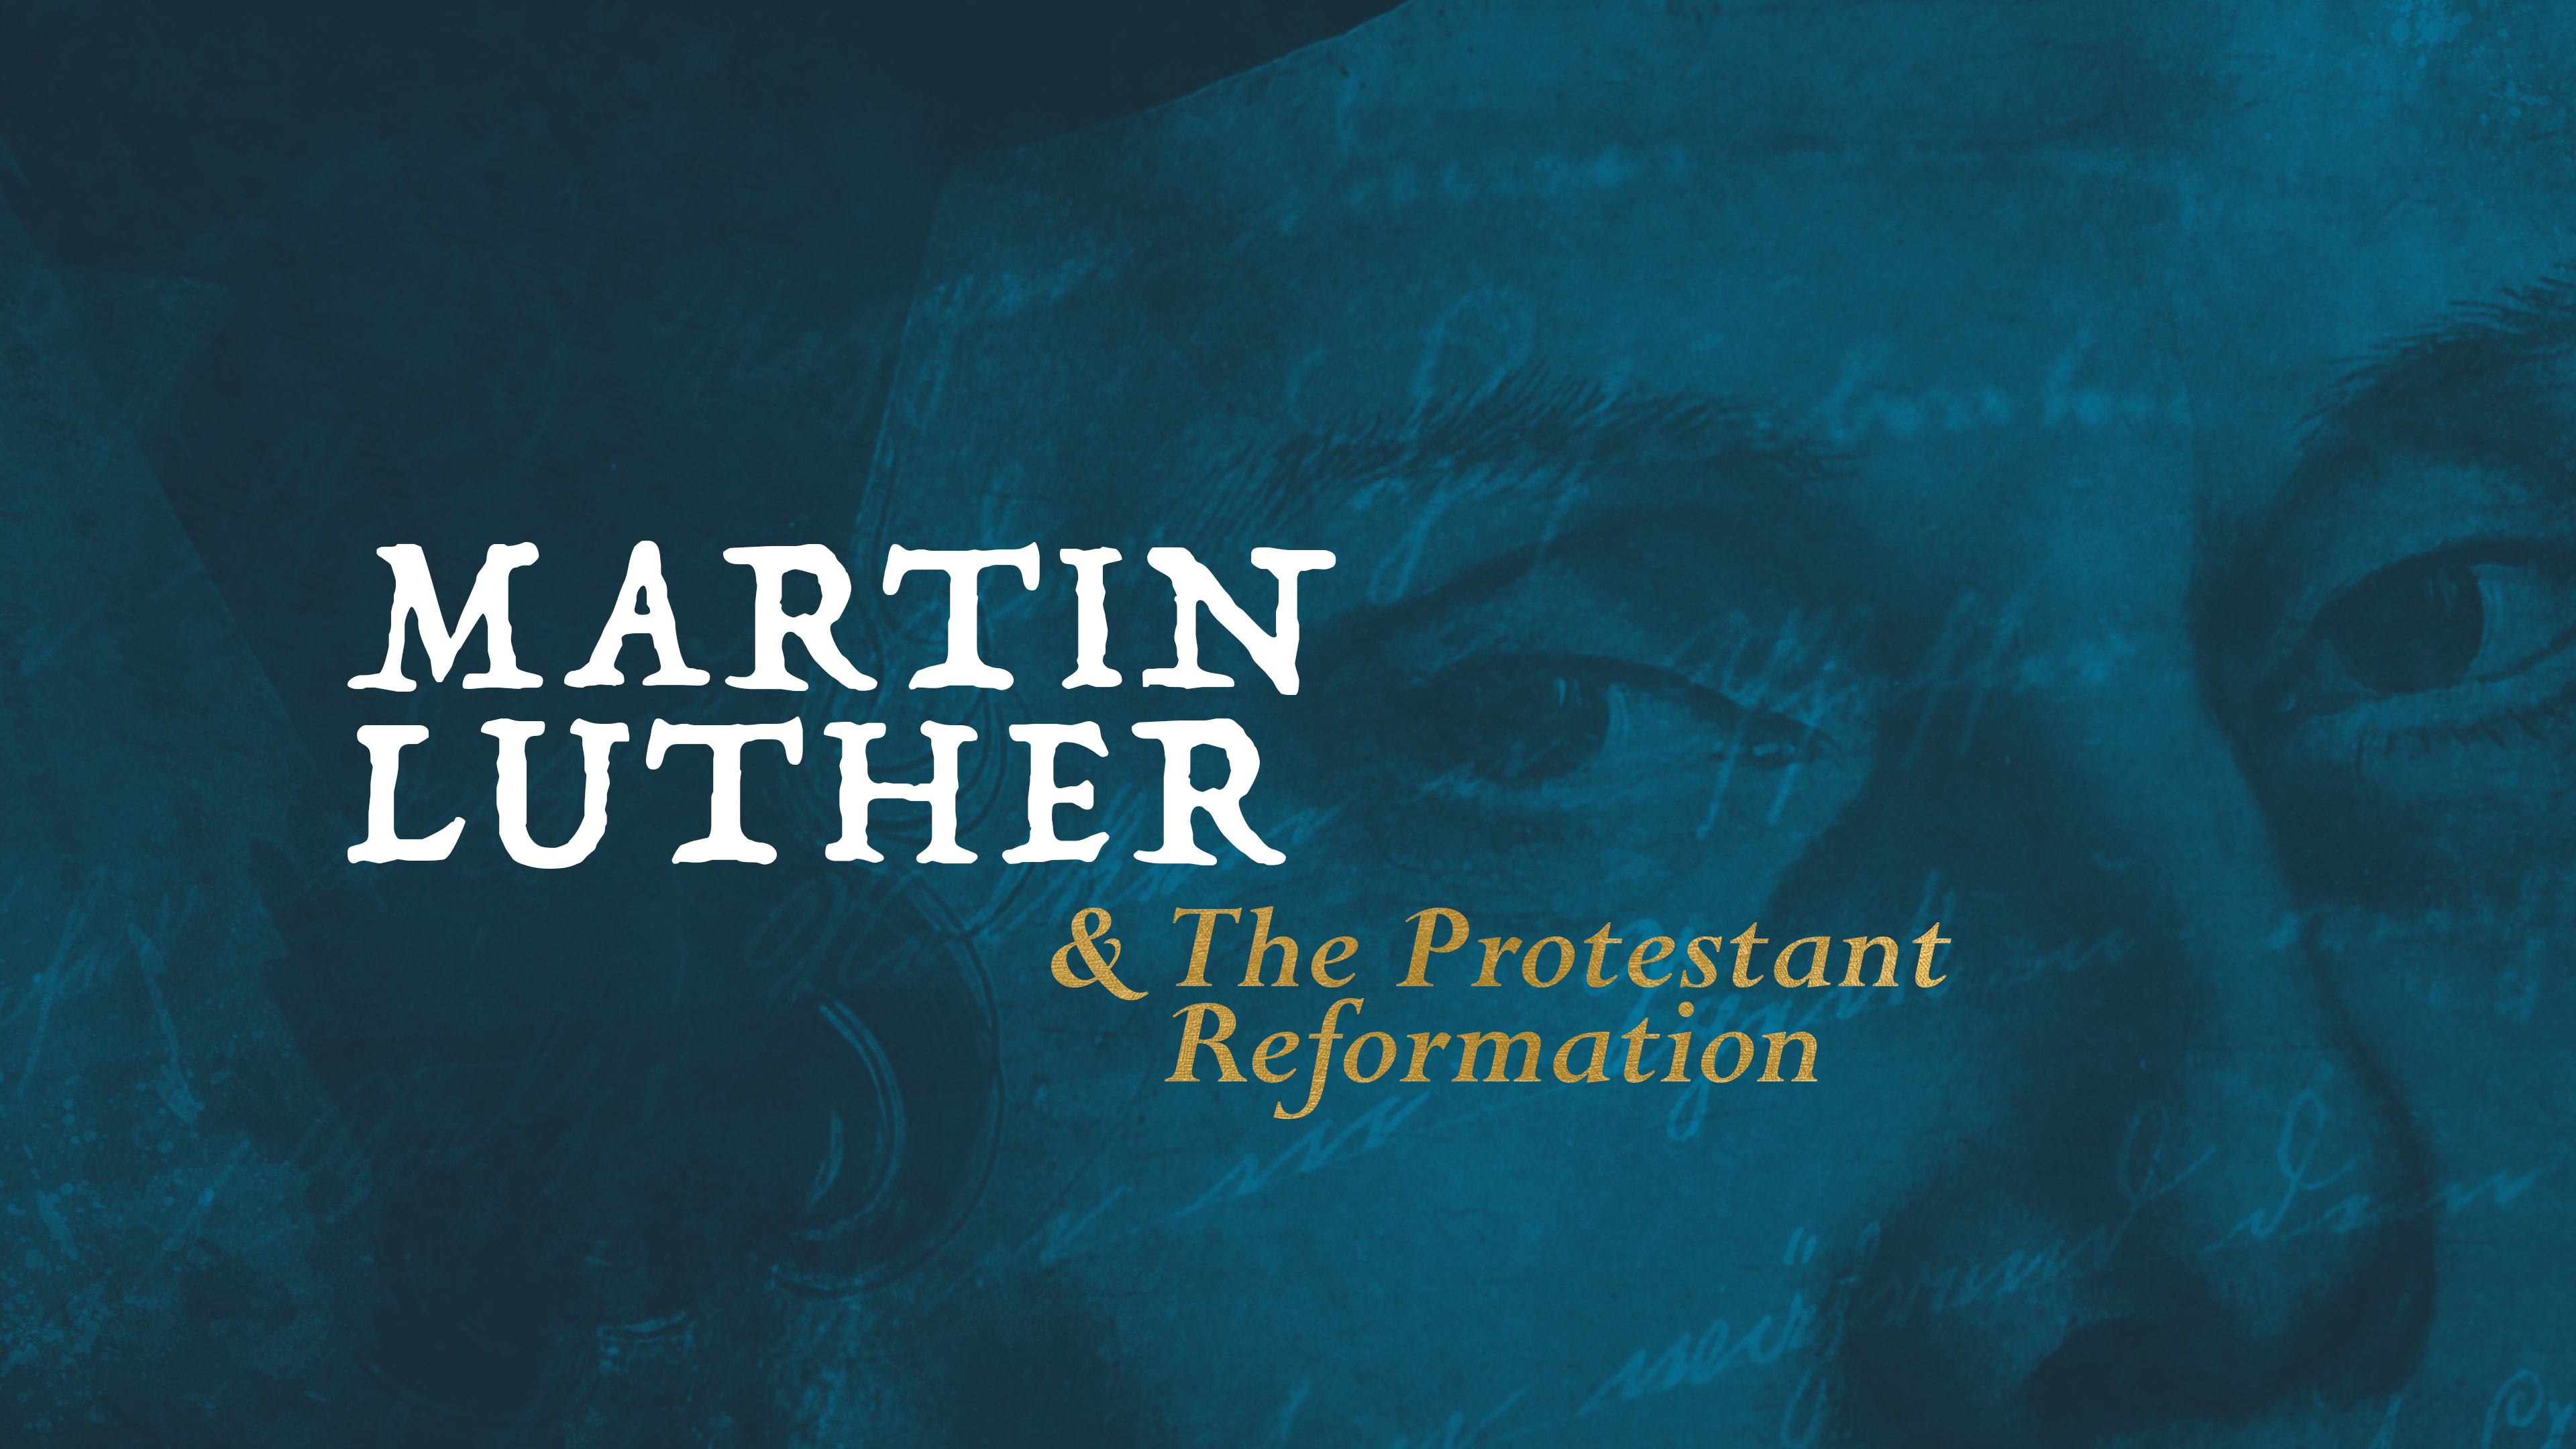 Martin Luther & The Protestant Reformation